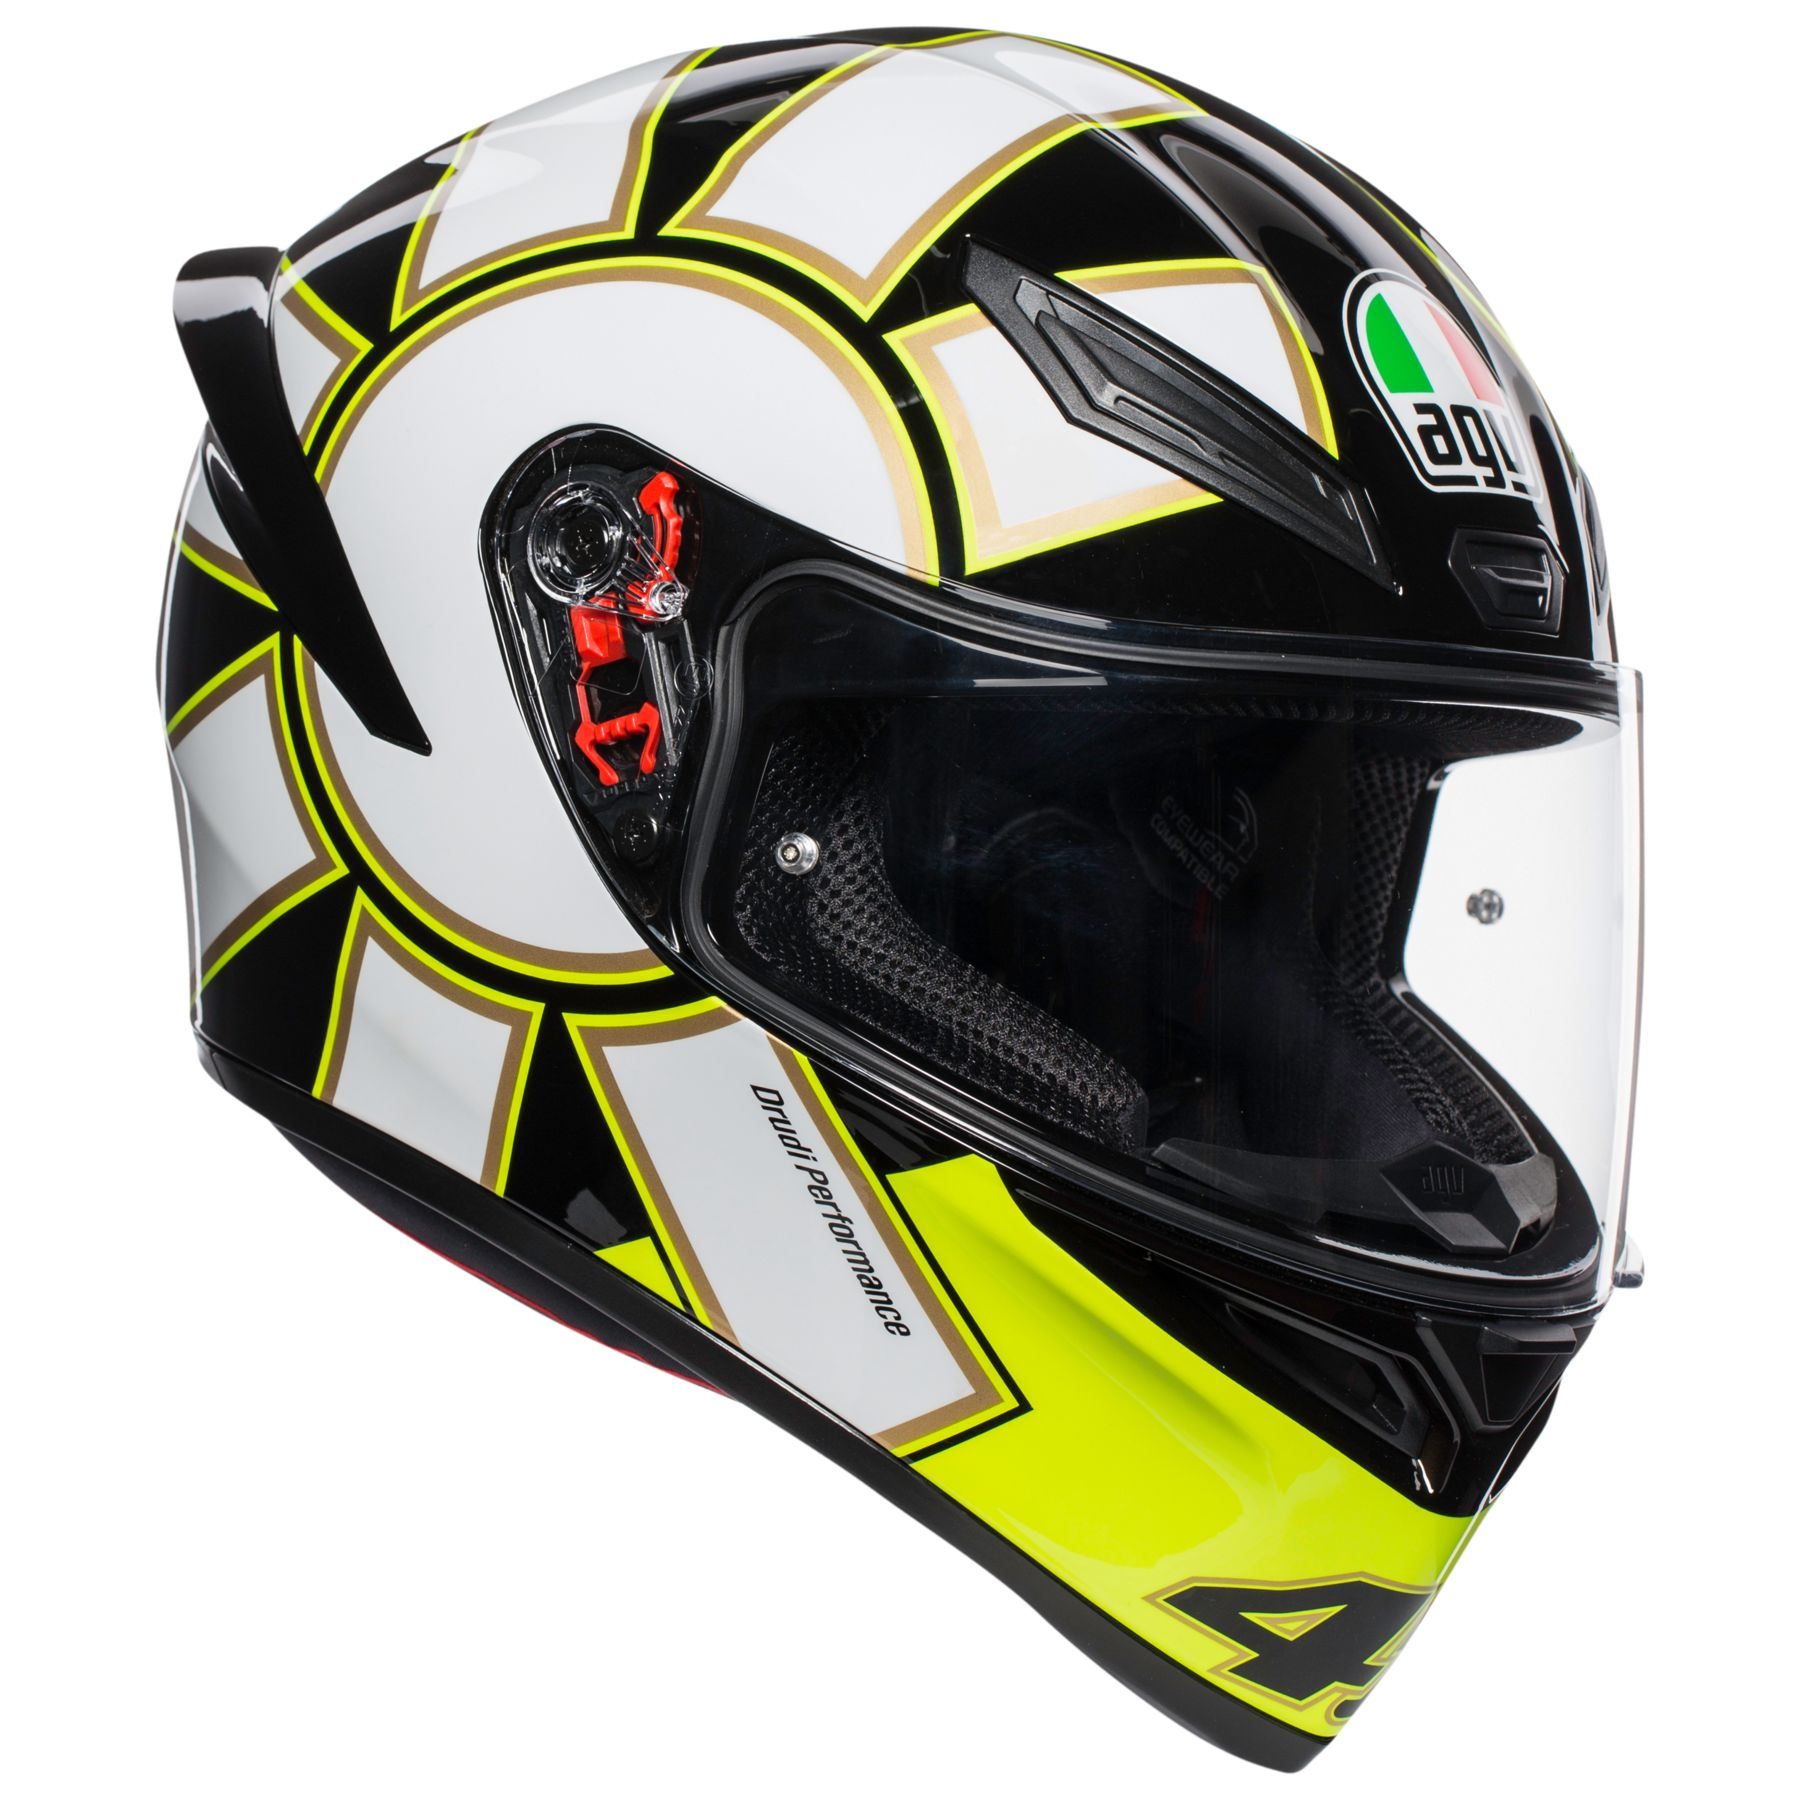 and Medium-Small Helmets AGV Iridium Silver GT2-1 Shield with Pin Lock Pins Scratch-Resistant and UV-B Protected for K-3 SV and K-5 X-Small Small